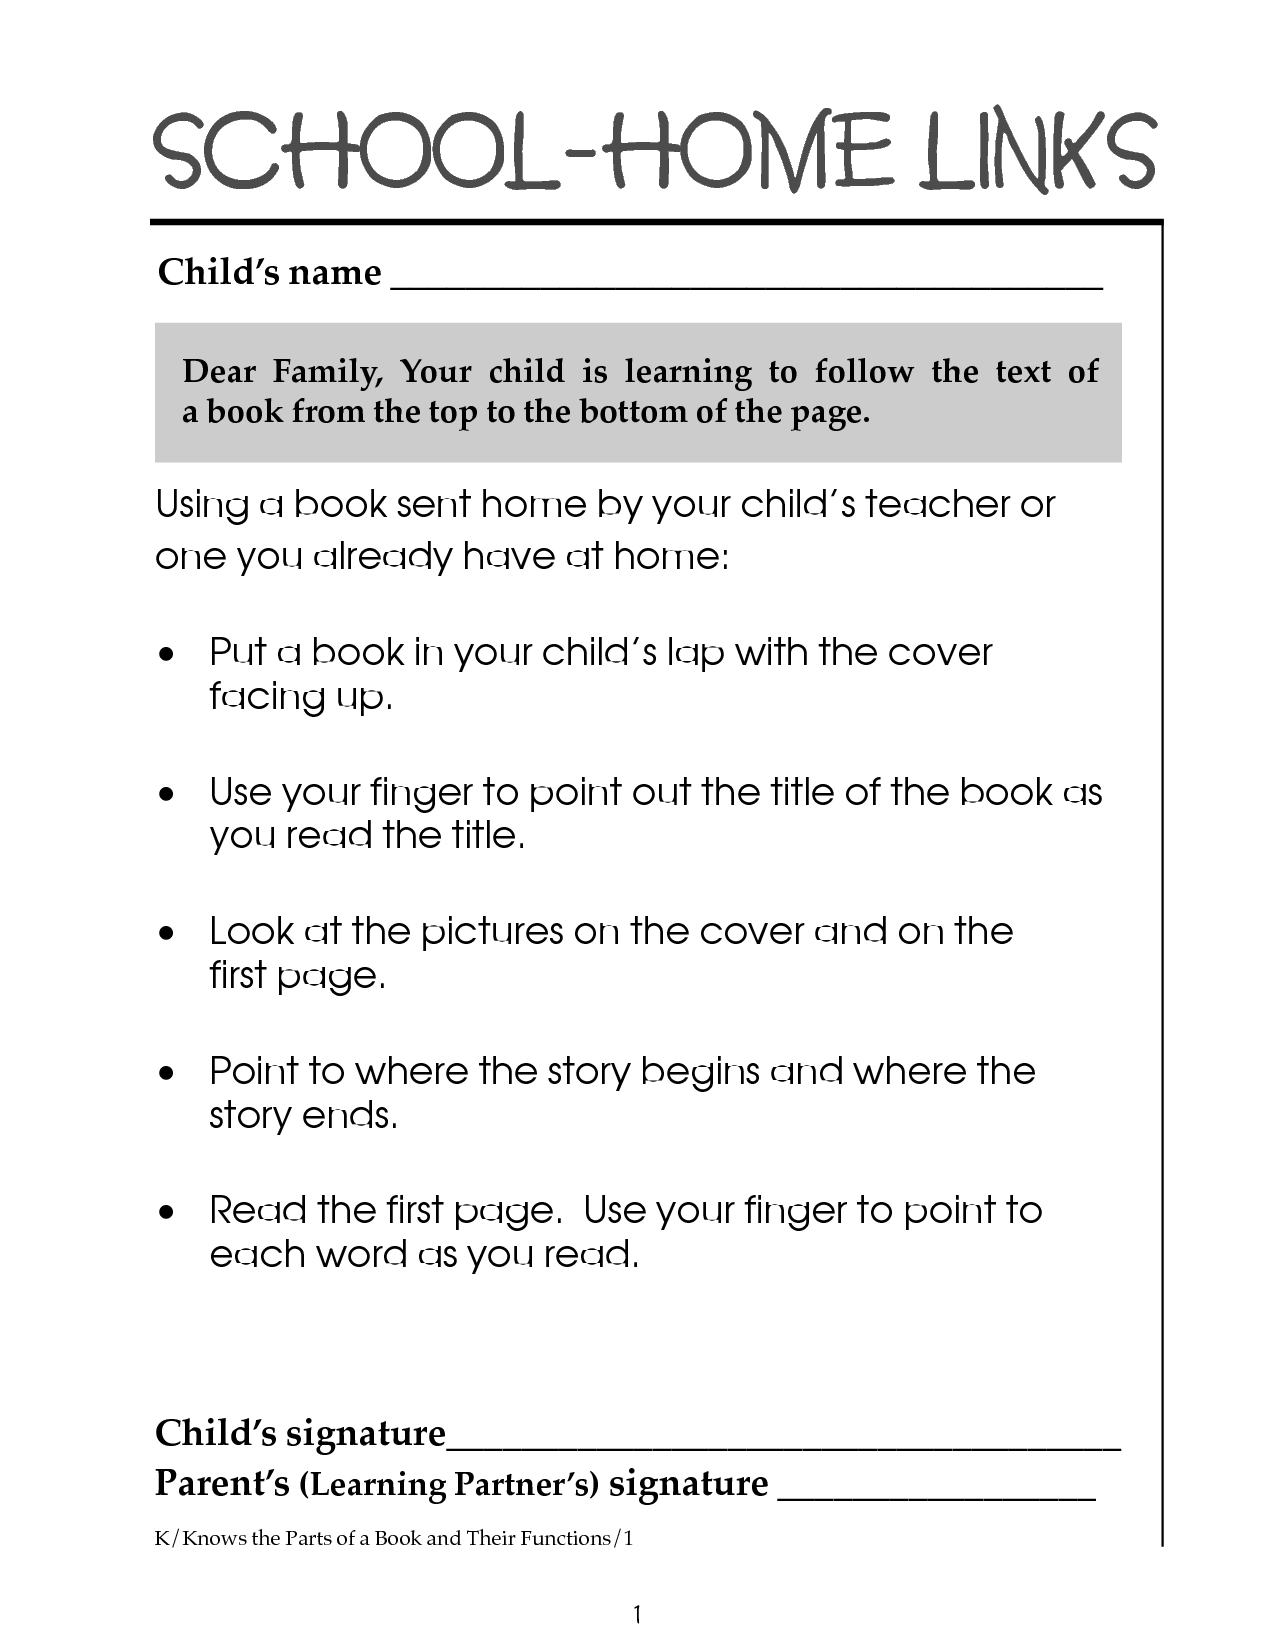 15 Best Images Of Red Cross First Aid Worksheets